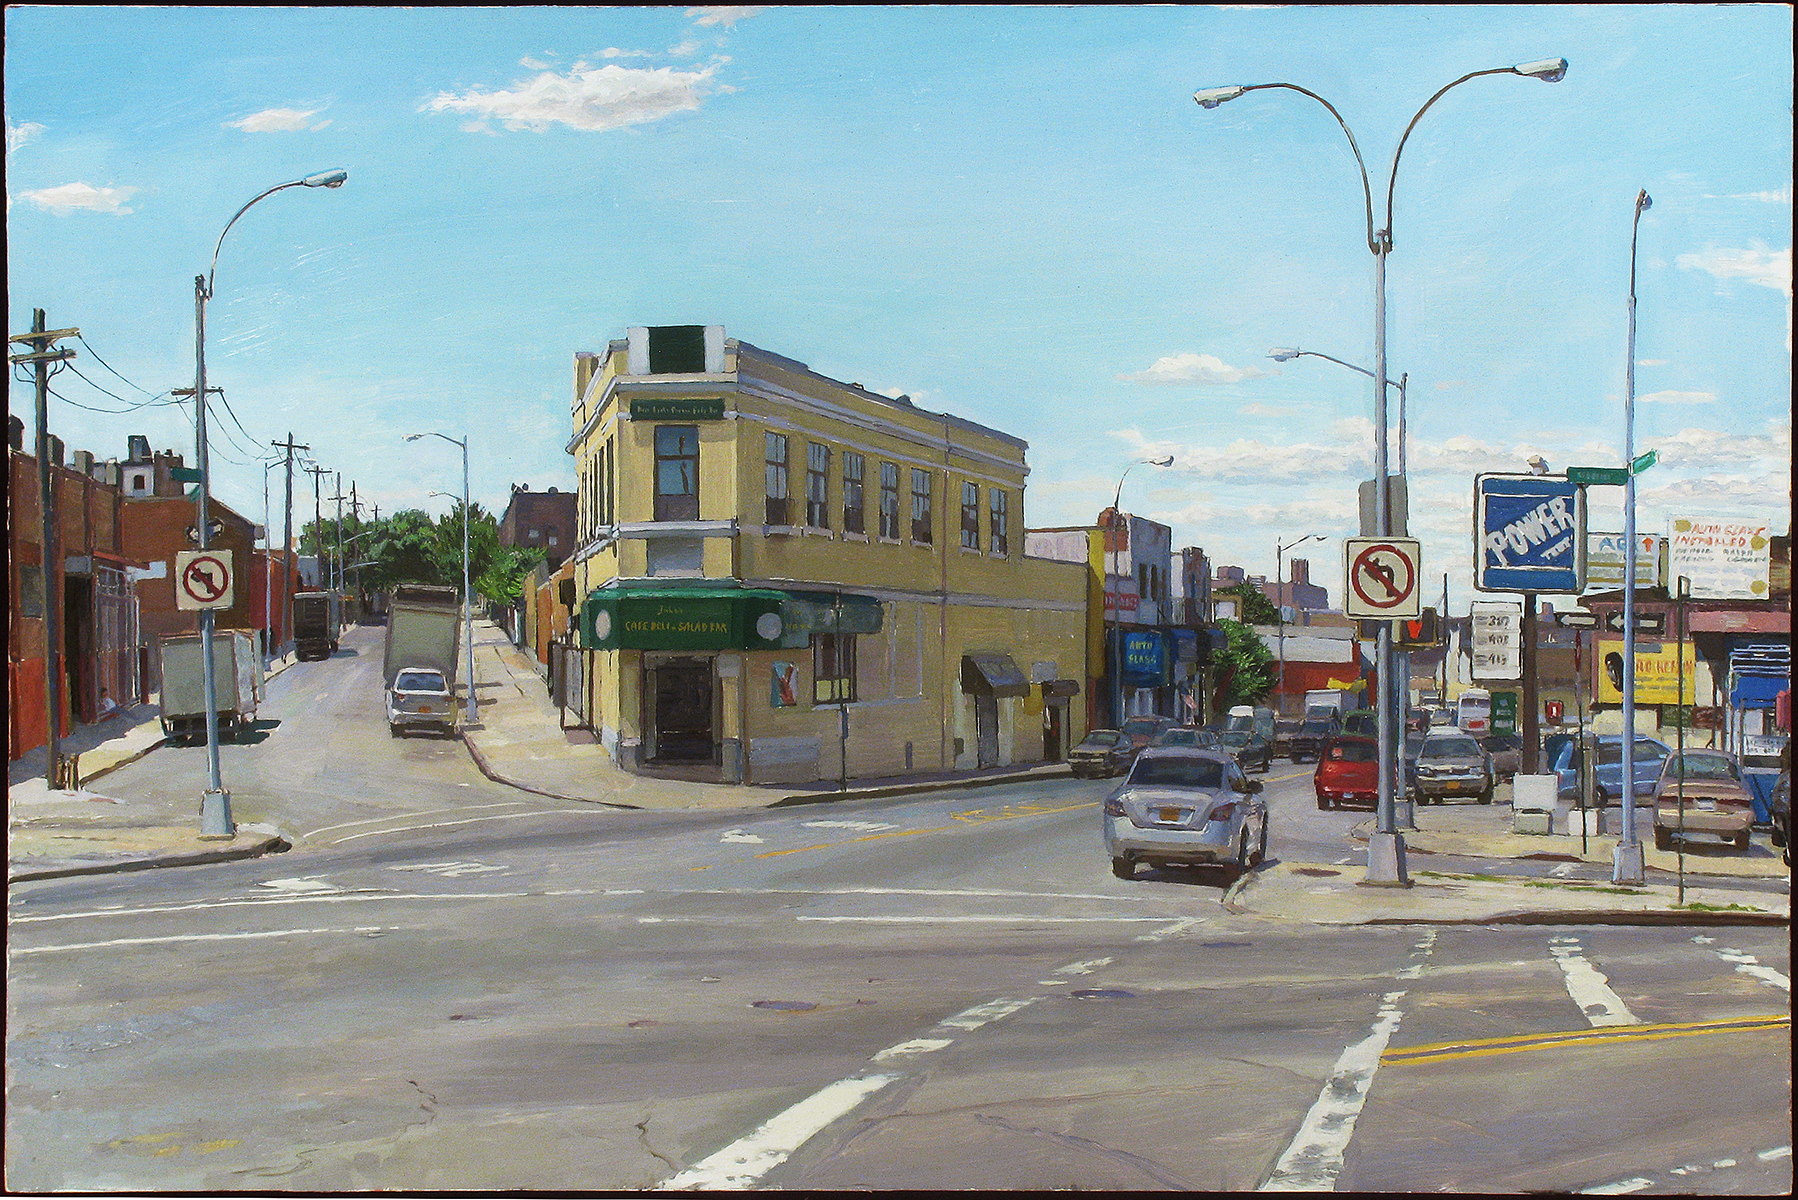 "FLUSHING AND METROPOLITAN oil on panel 24 x 36"" 2014 (sold)"